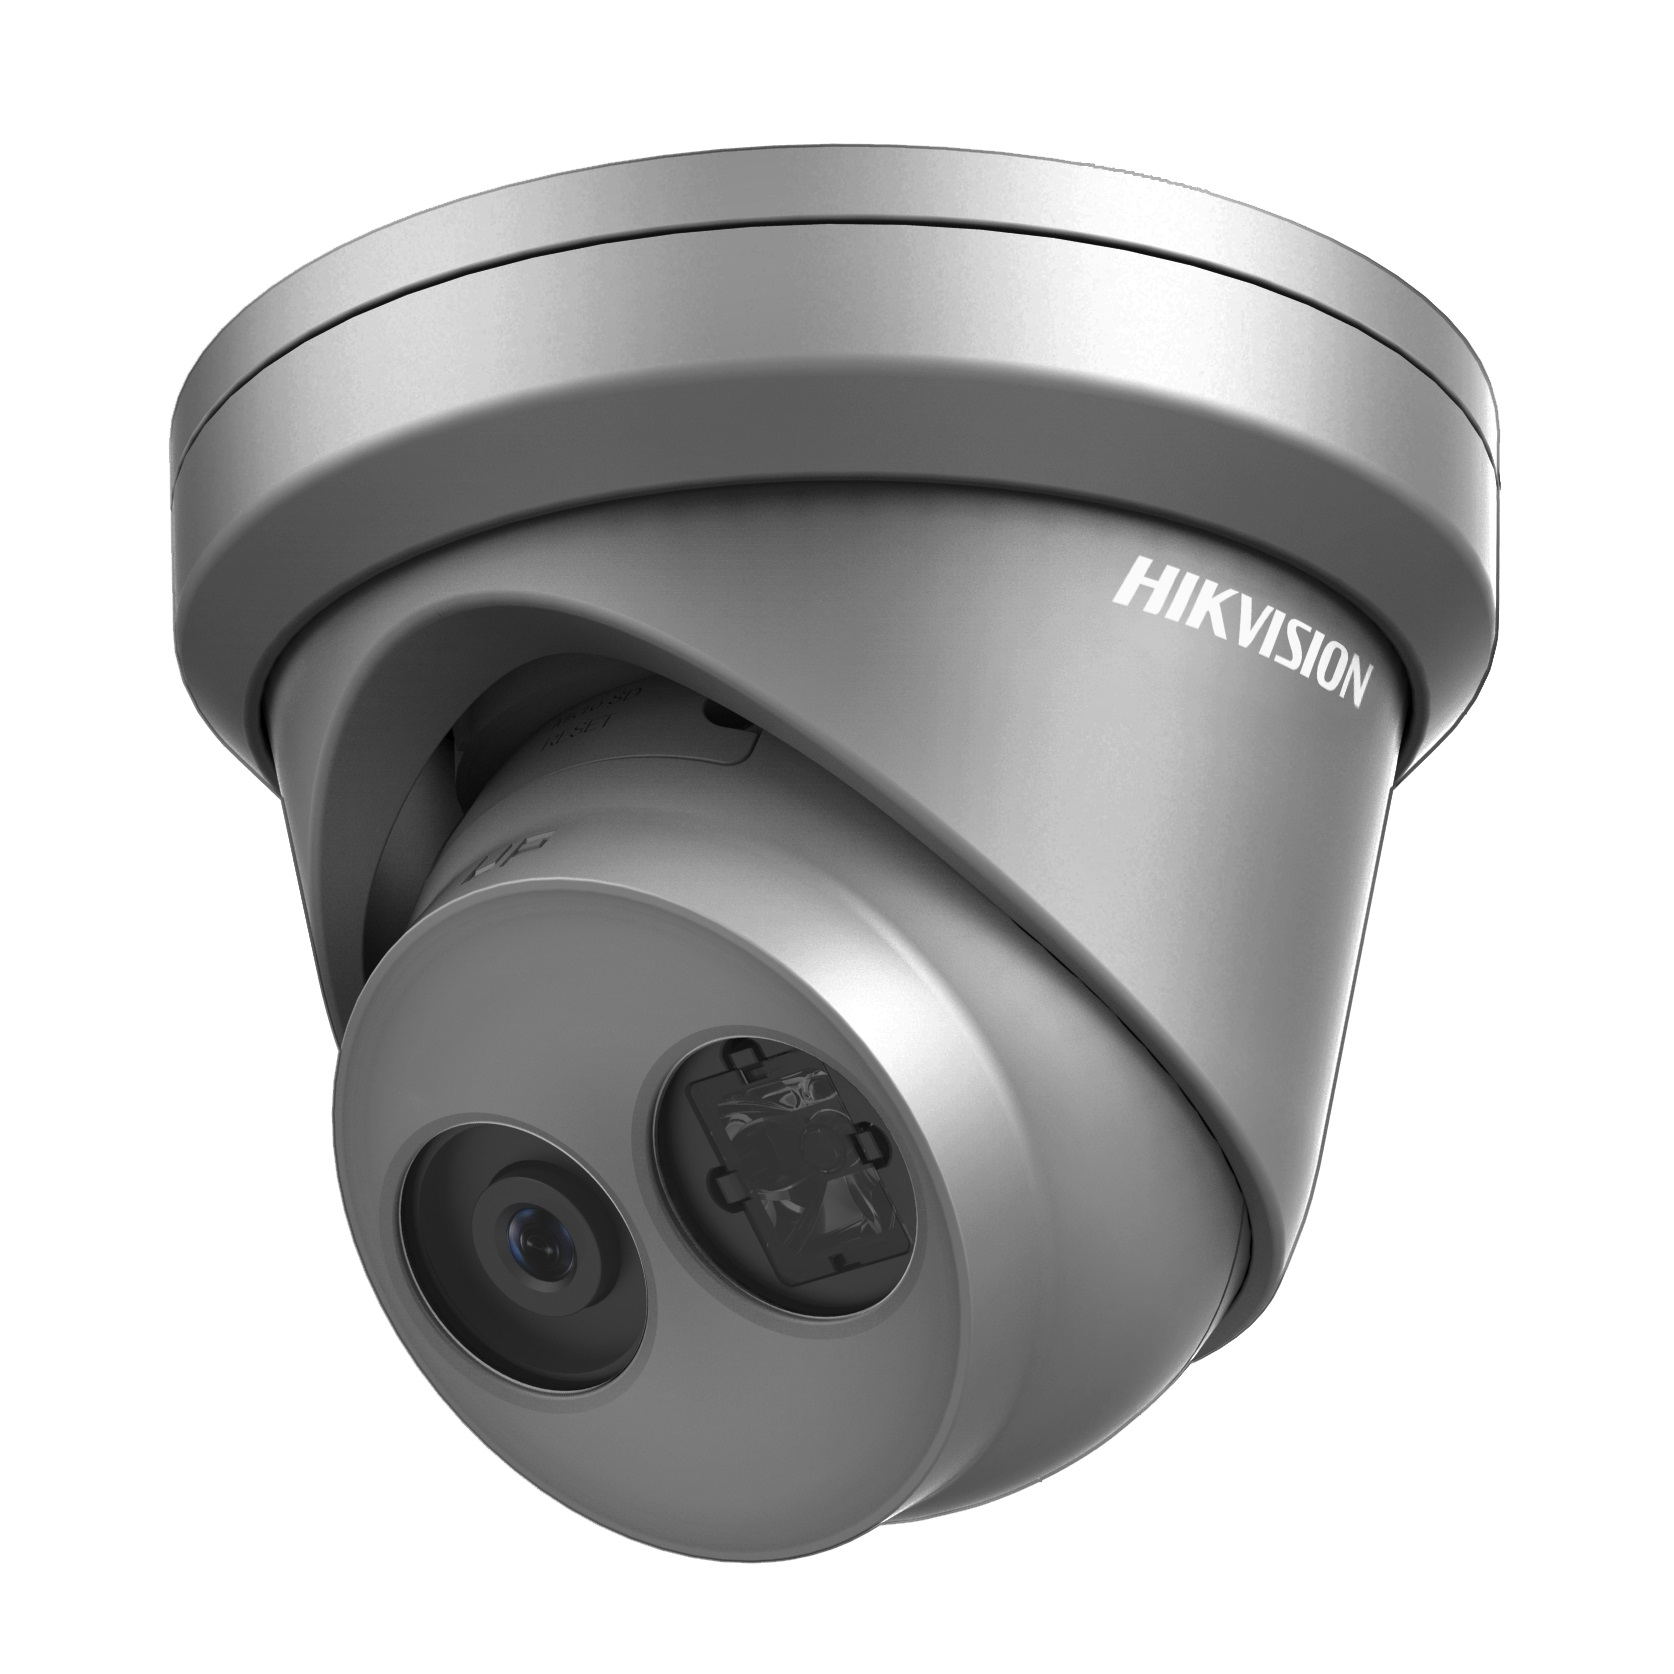 Hikvision 6MP 2.8mm fixed lens turret IP Network PoE camera with IR 30m 120dB – Grey